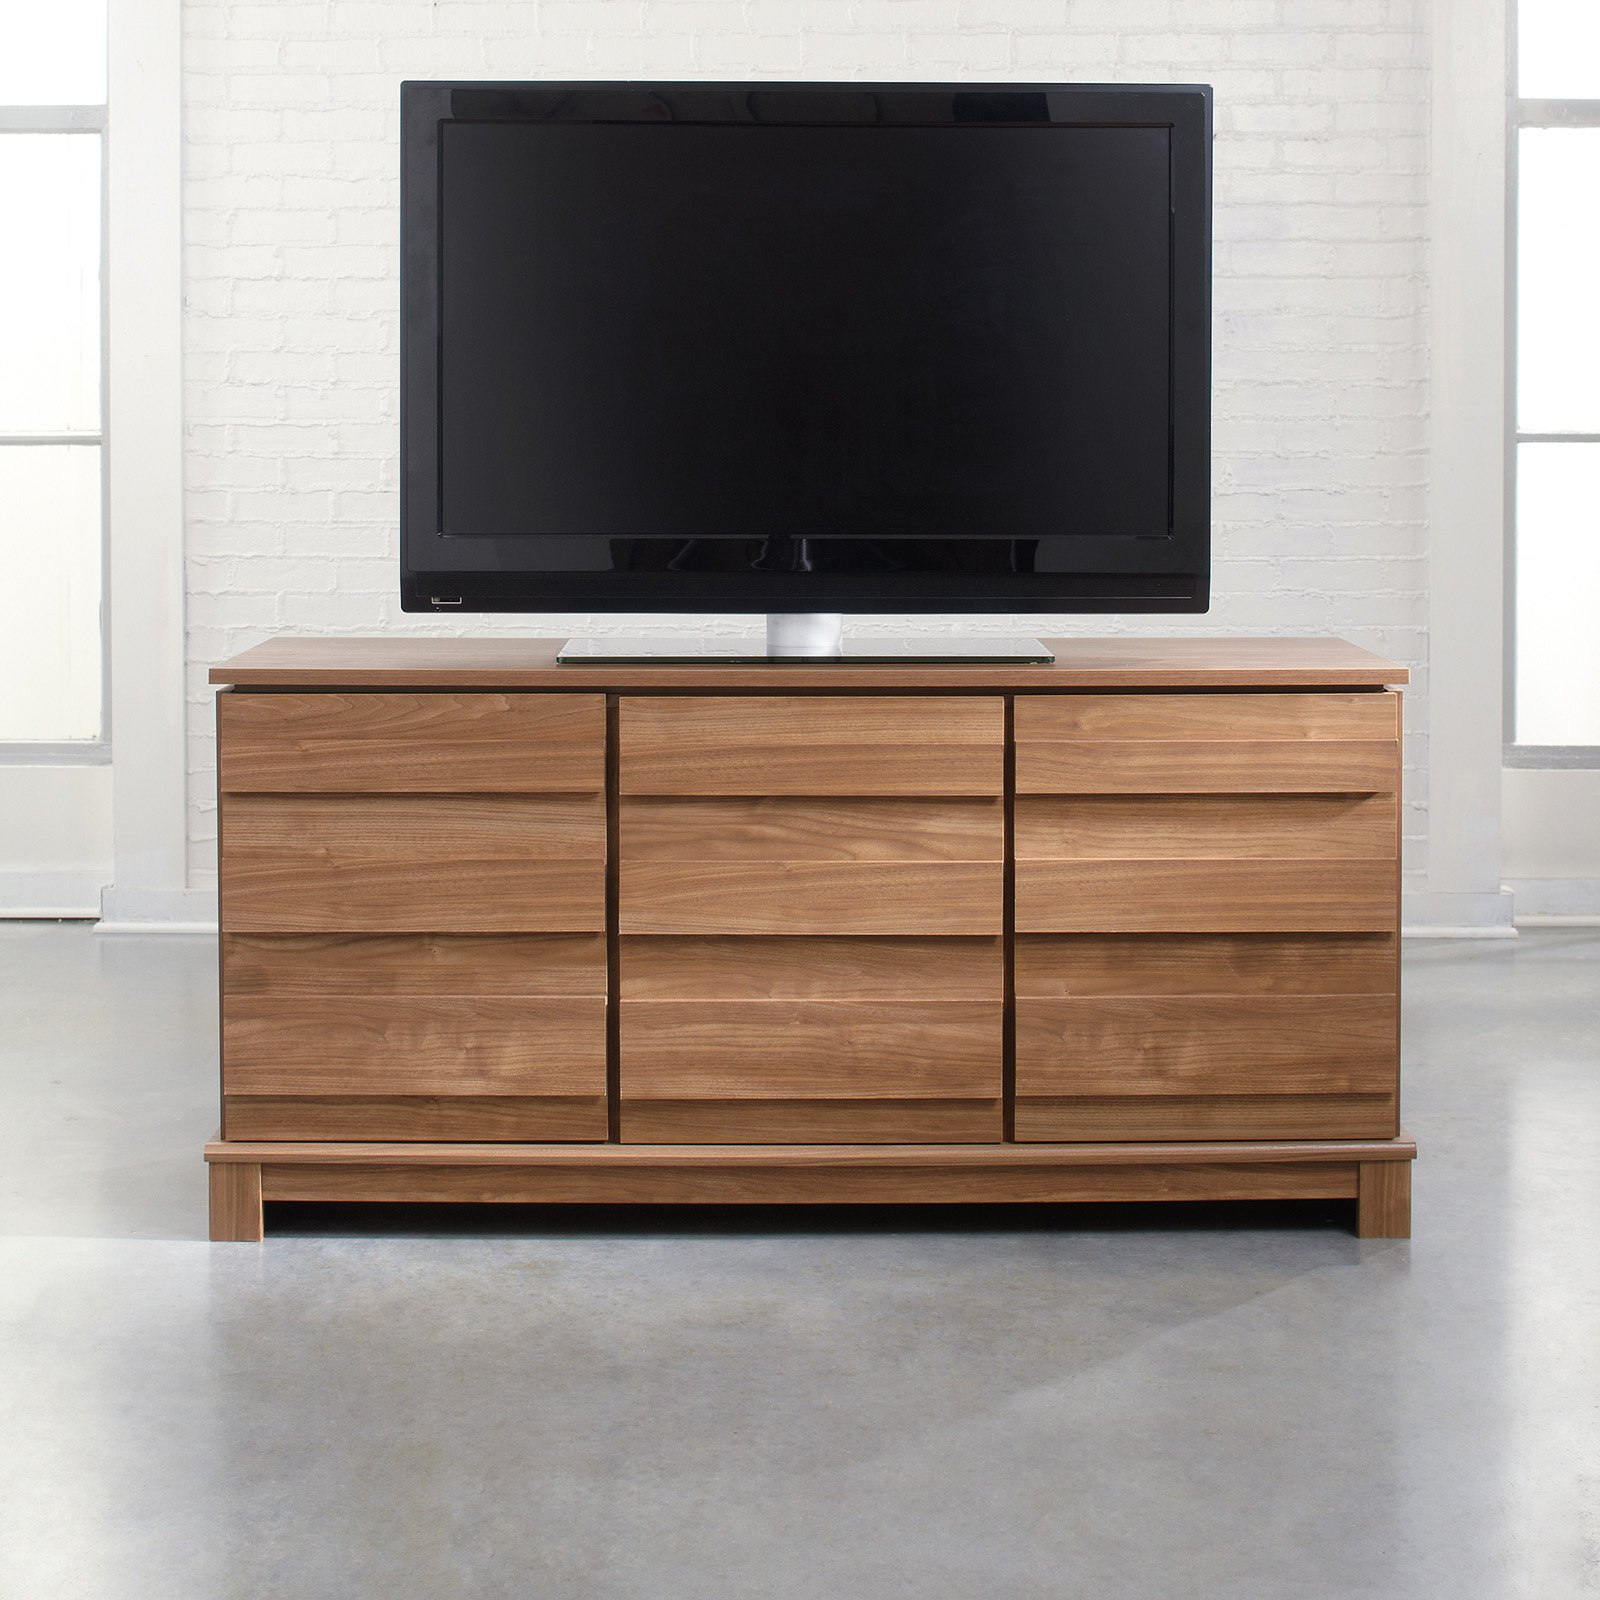 Sauder Soft Modern Entertainment Credenza - Fine Walnut